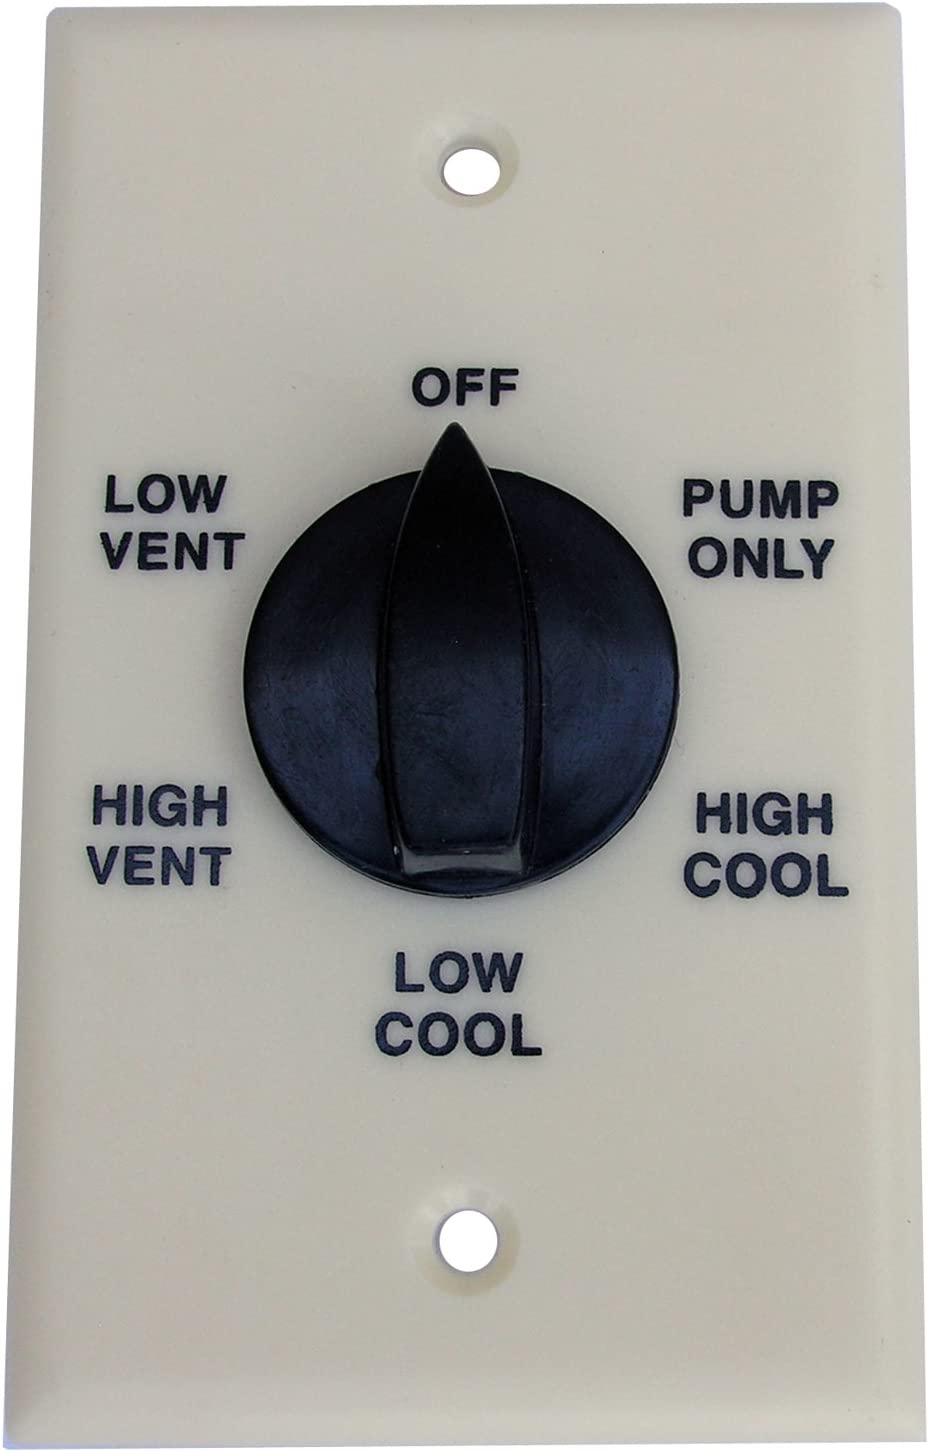 LASCO 36-0233 Evaporative Water Cooler Thermostat with Two Speed Six Position Switch